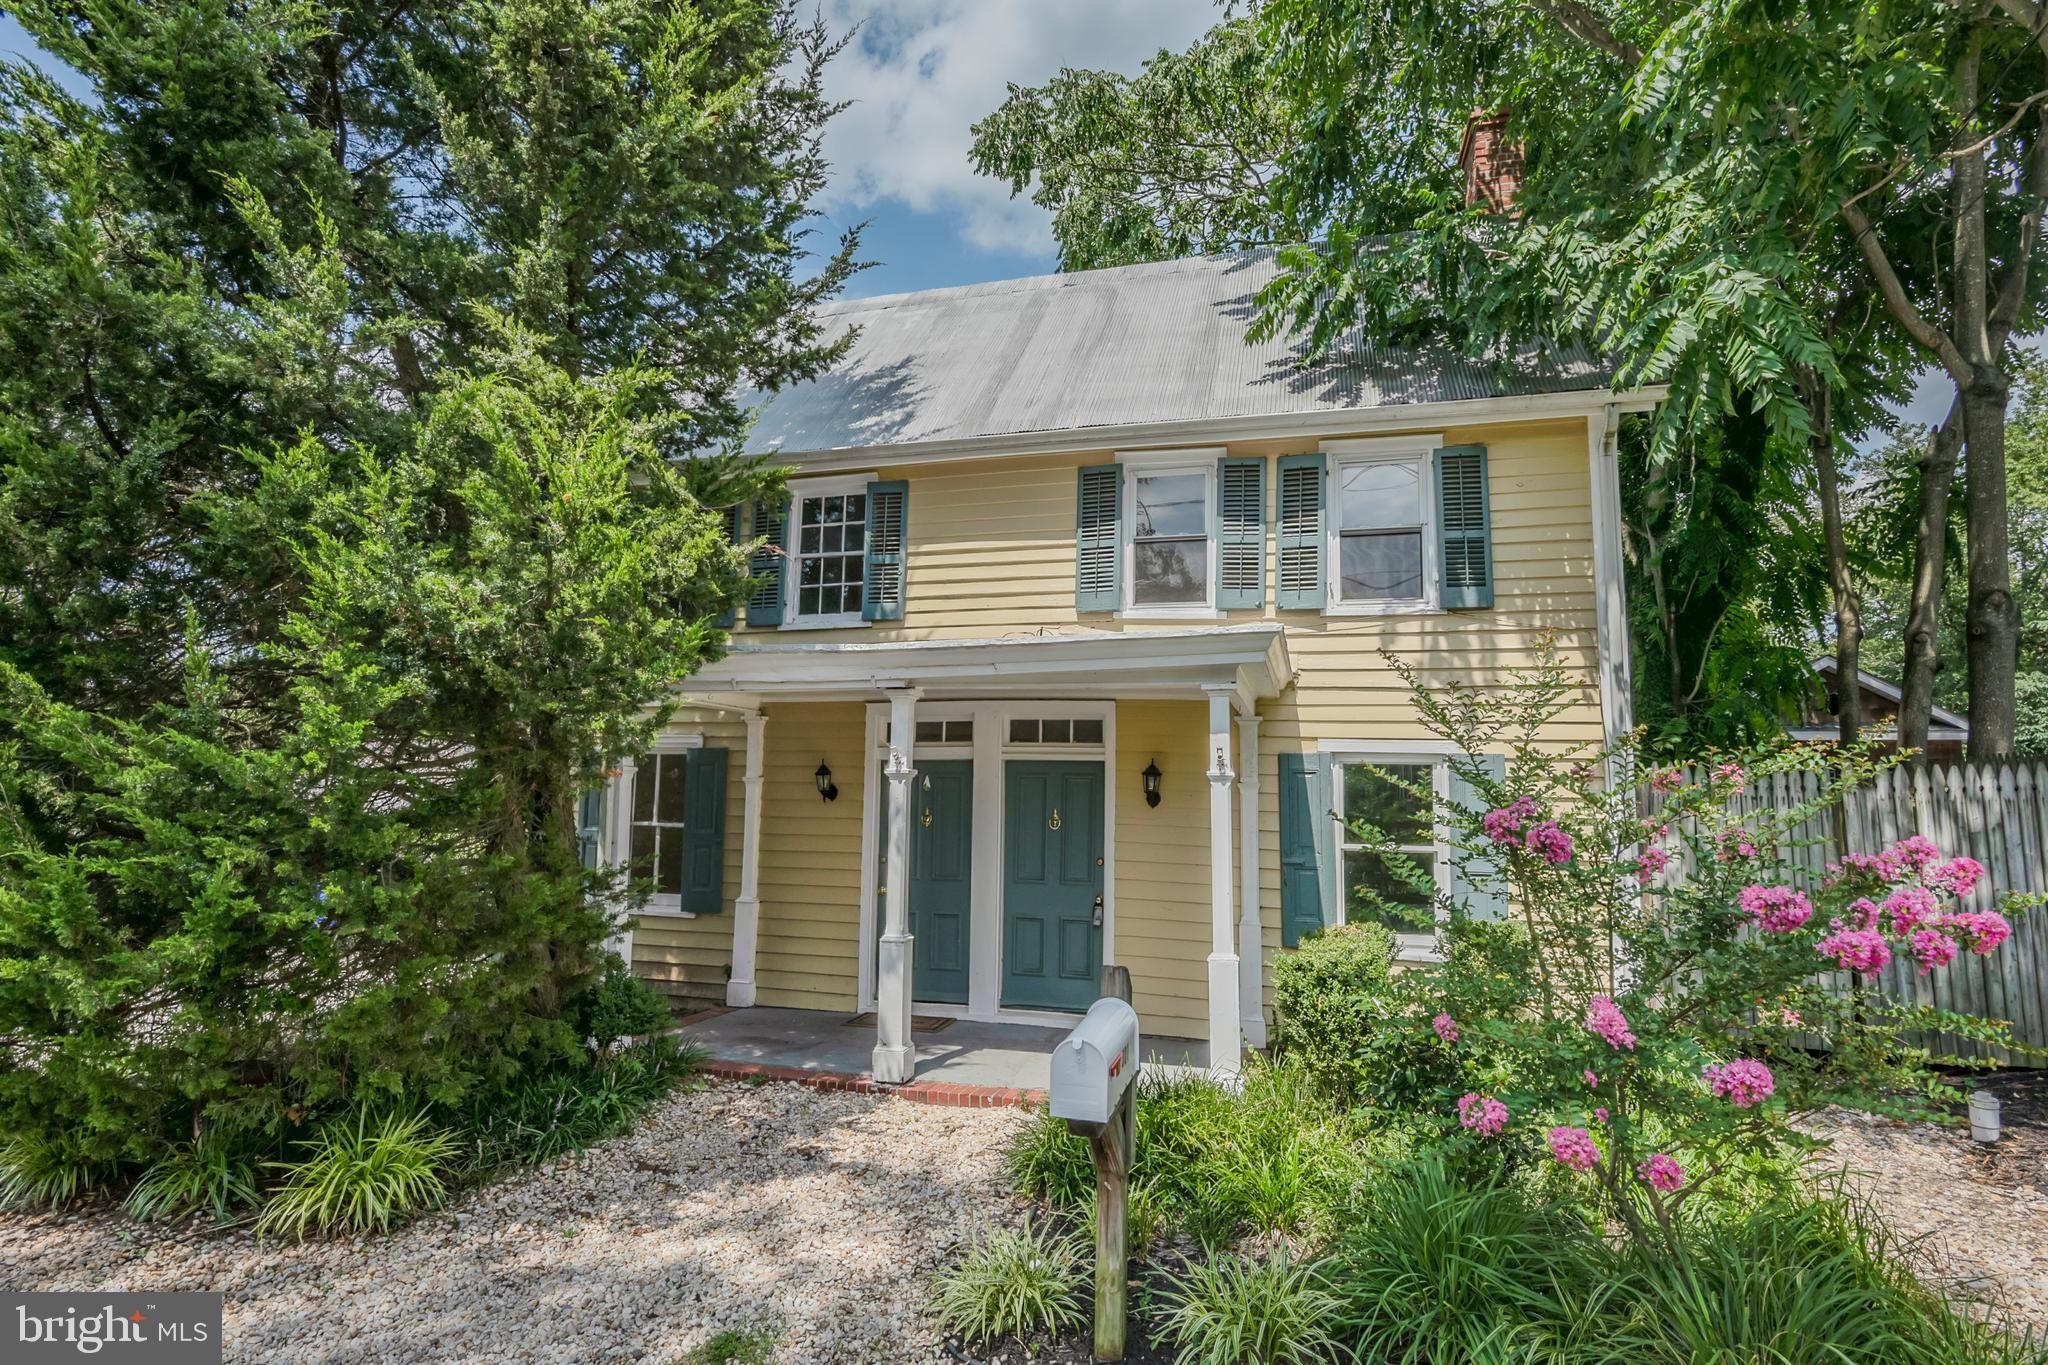 Centrally located in the heart of Milton, this colonial-style home is situated on a spacious corner